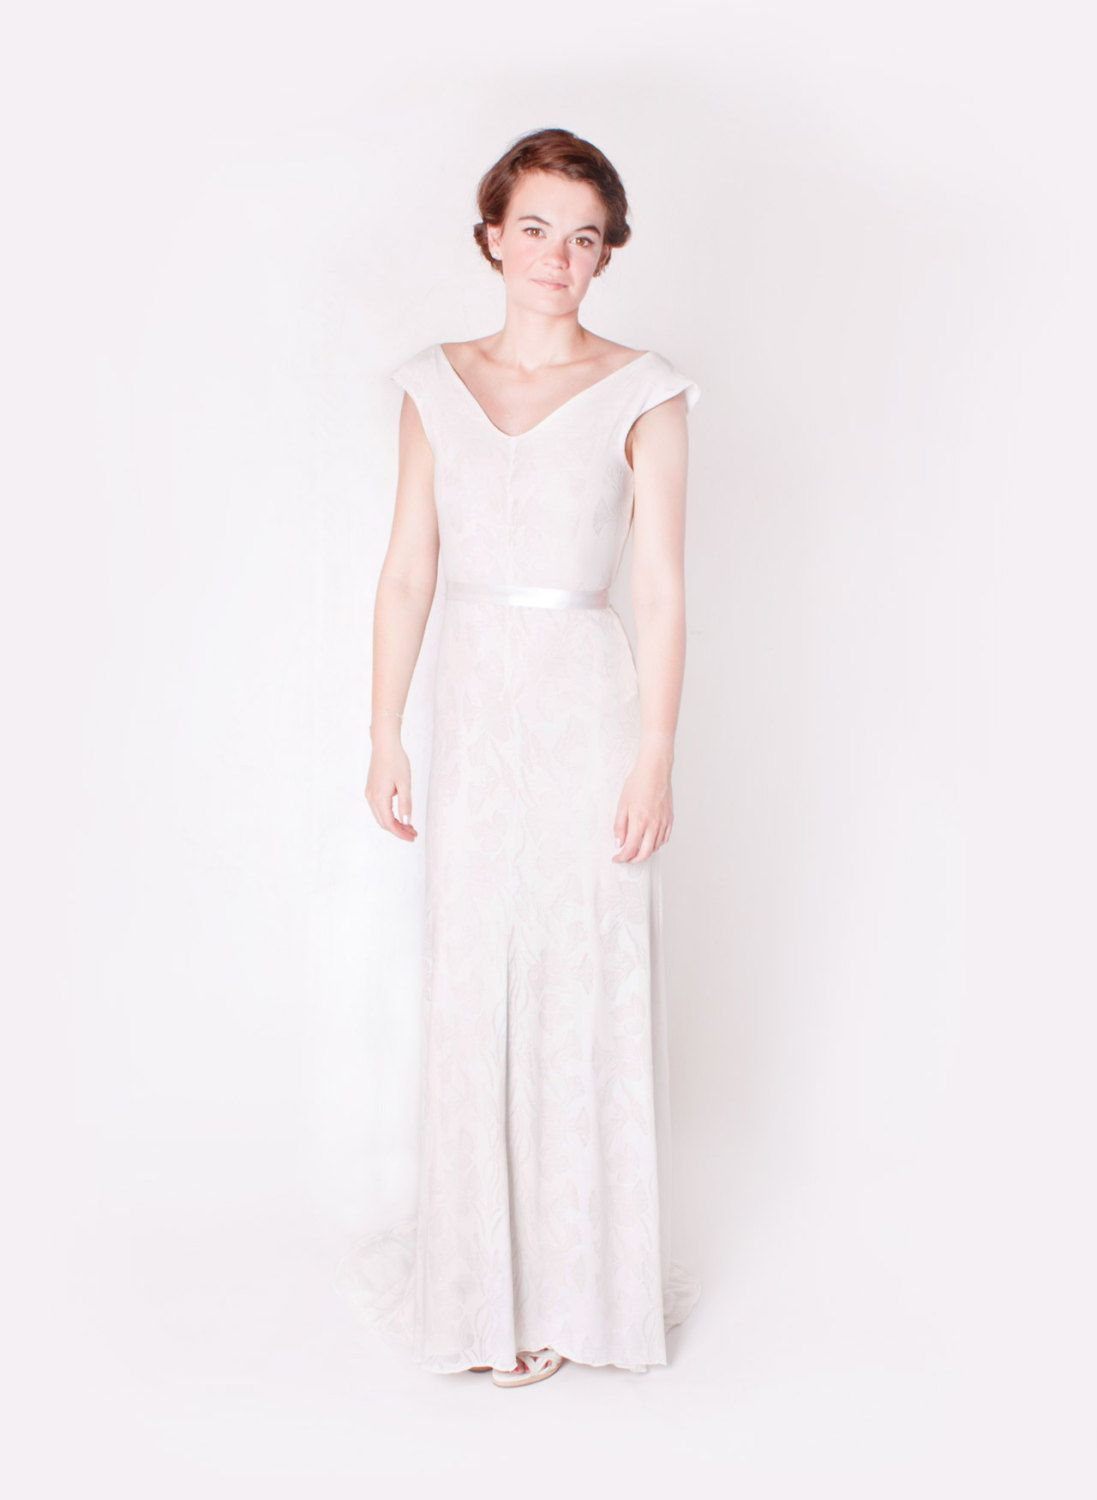 Floral ivory simple jersey wedding dress with back necklace by